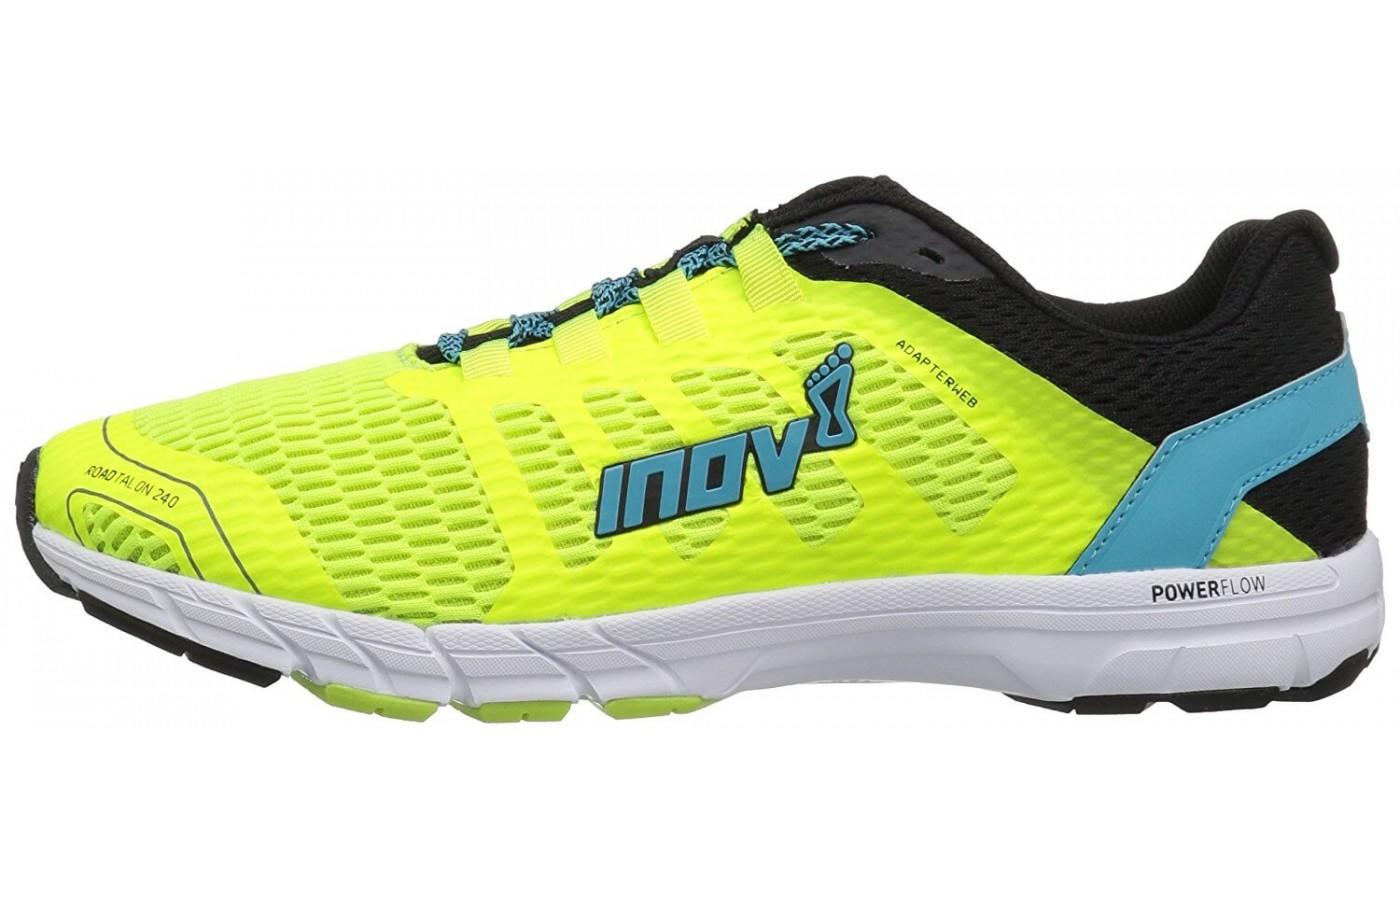 The POWERFLOW midsole technology used in the Inov-8 Roadtalon 240 offers better shock absorption and energy return.